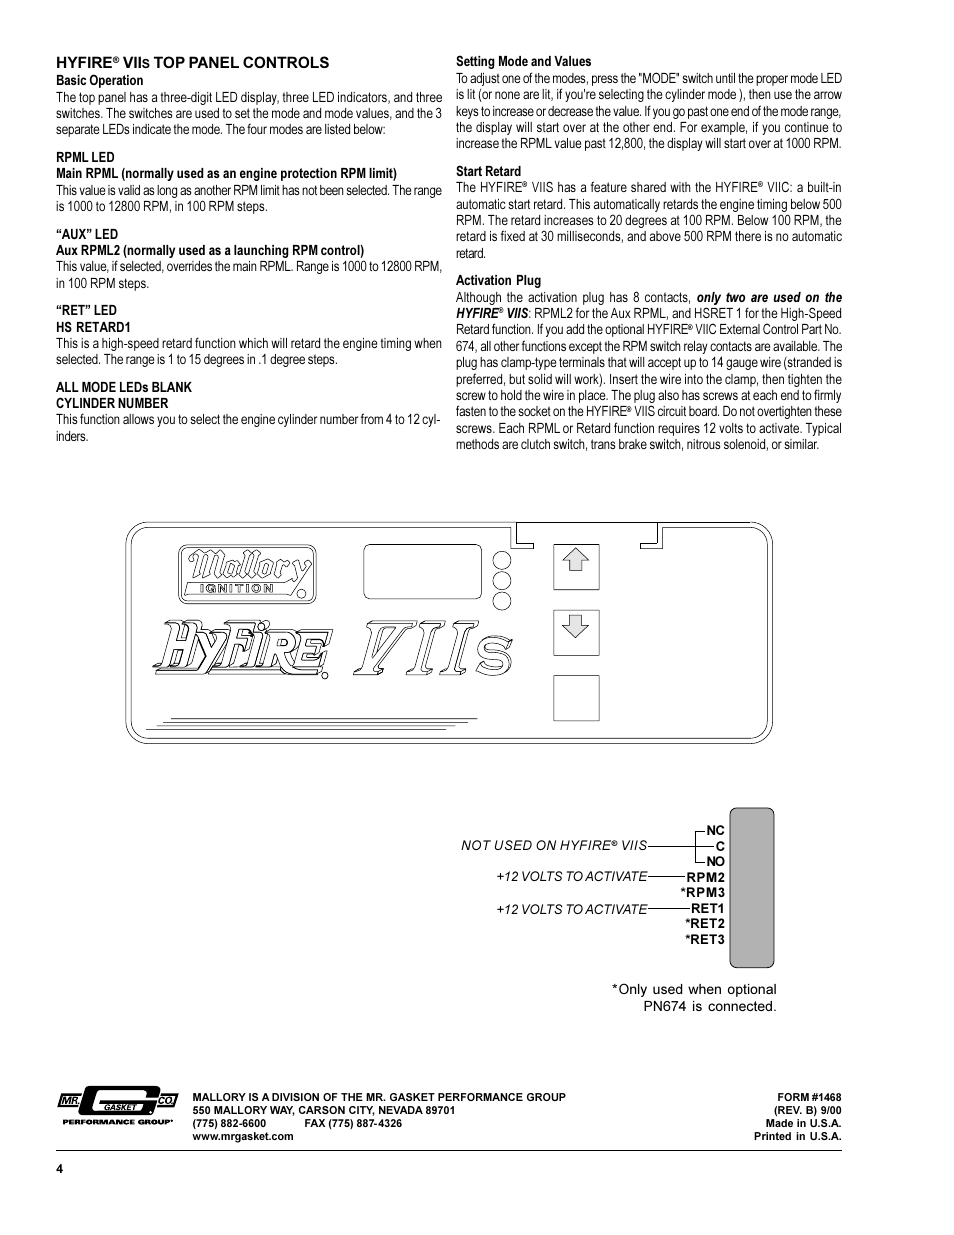 mallory ignition mallory hyfire viis sportsman cd ignition system 667s page4?resize\=665%2C861 diagrams ford electronic ignition wiring diagram electronic ford electronic ignition wiring diagram at virtualis.co